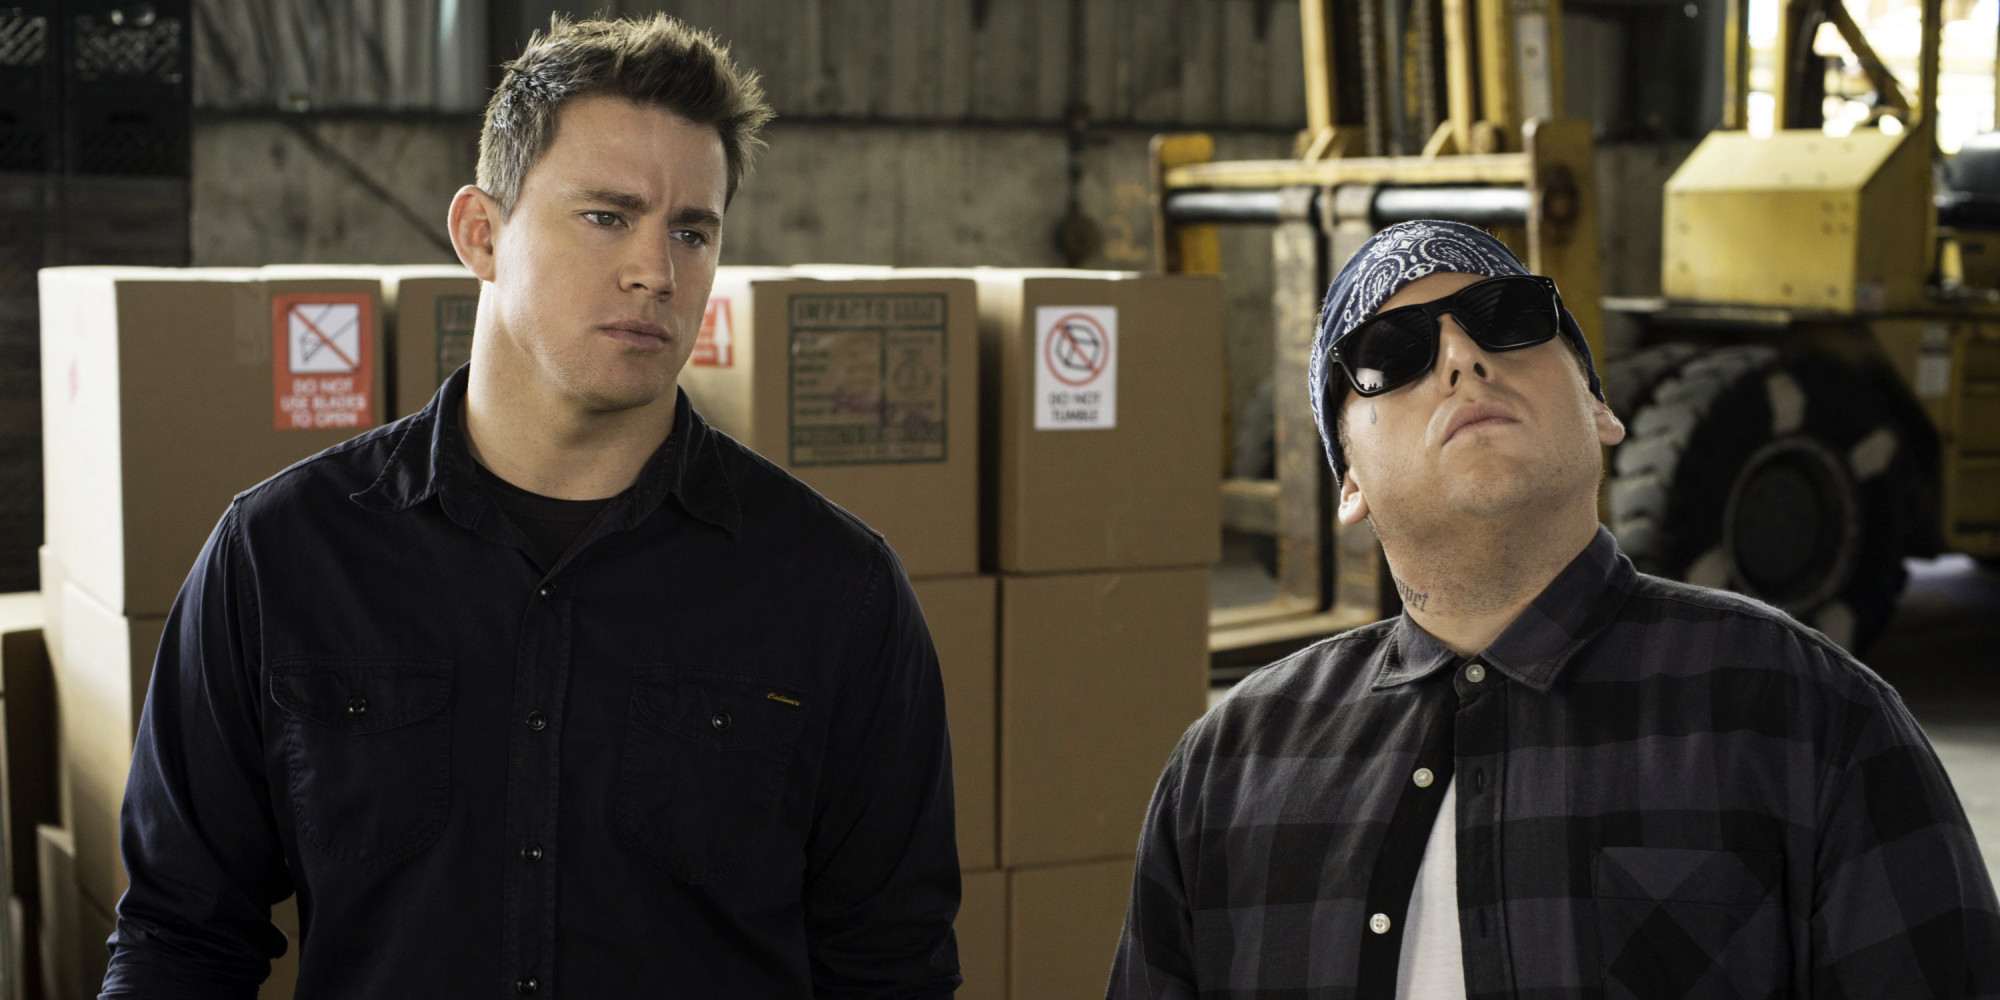 Zaki 39 s review 22 jump street huffpost - 21 jump street box office ...